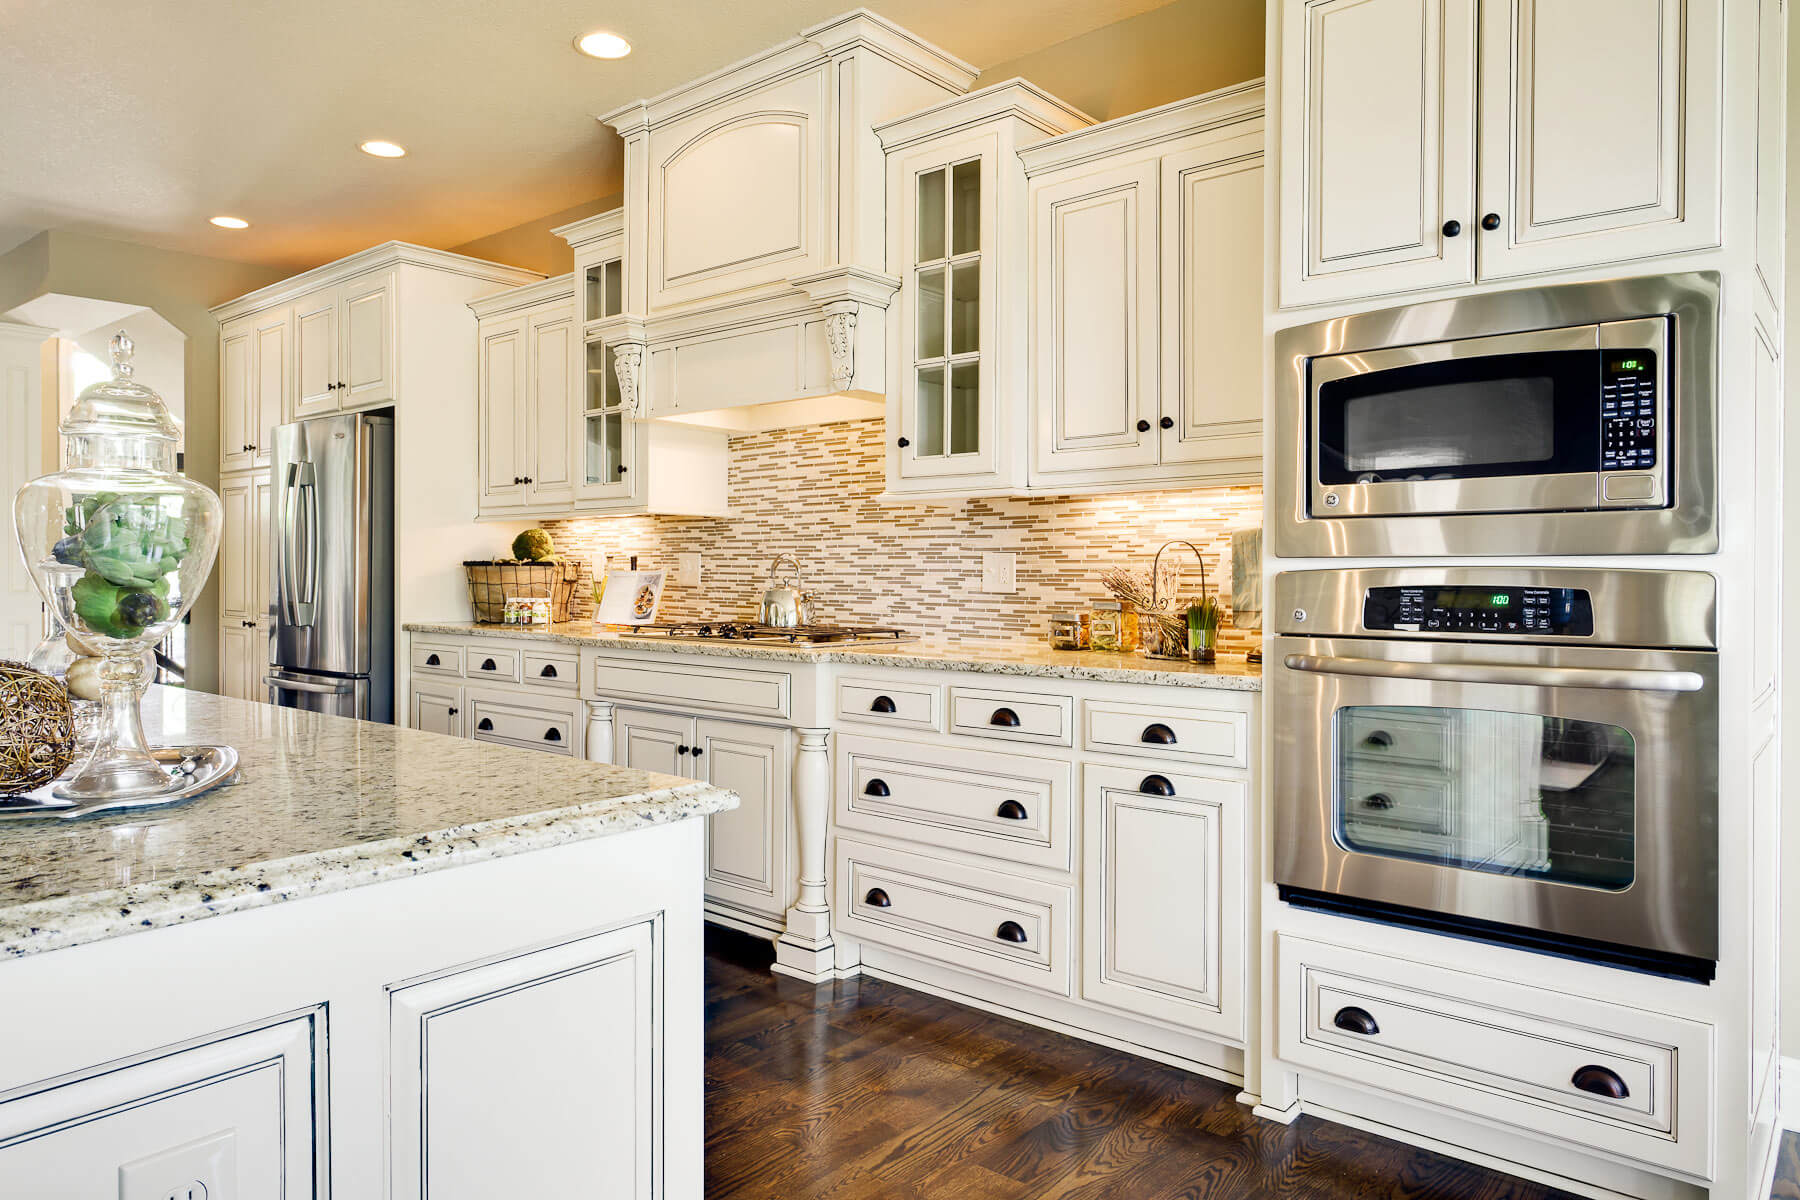 15 serene white kitchen interior design ideas https for White cabinets granite countertops